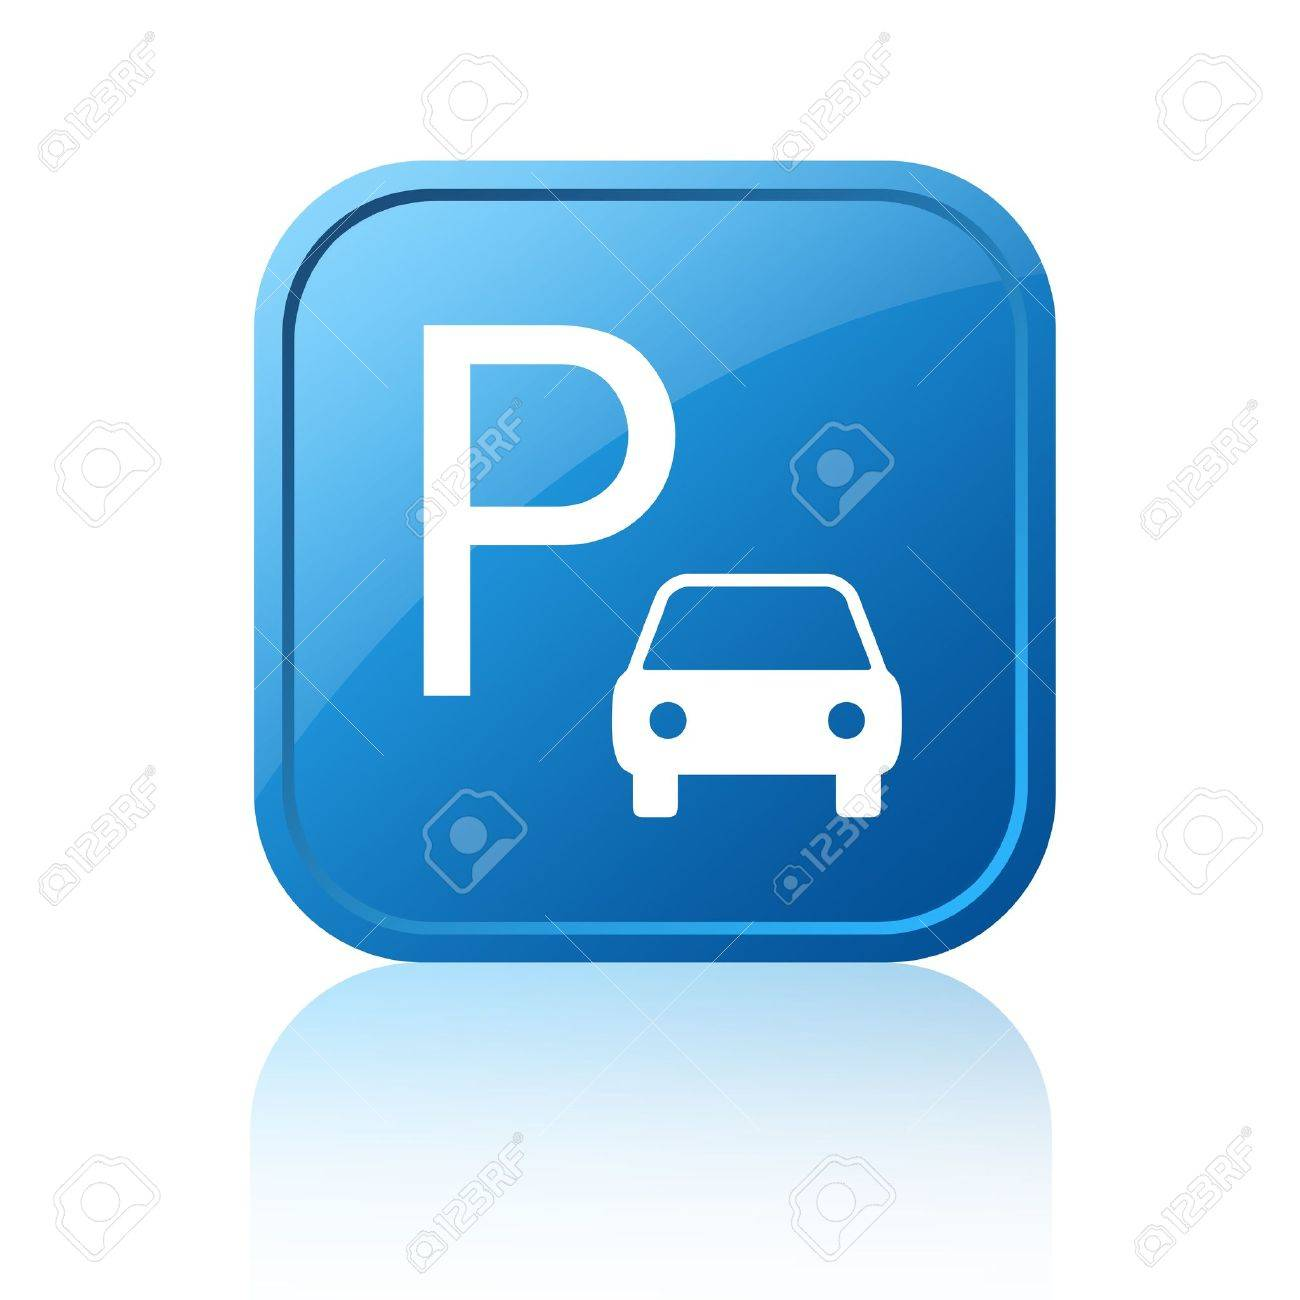 Parking sign Stock Photo - 10428503